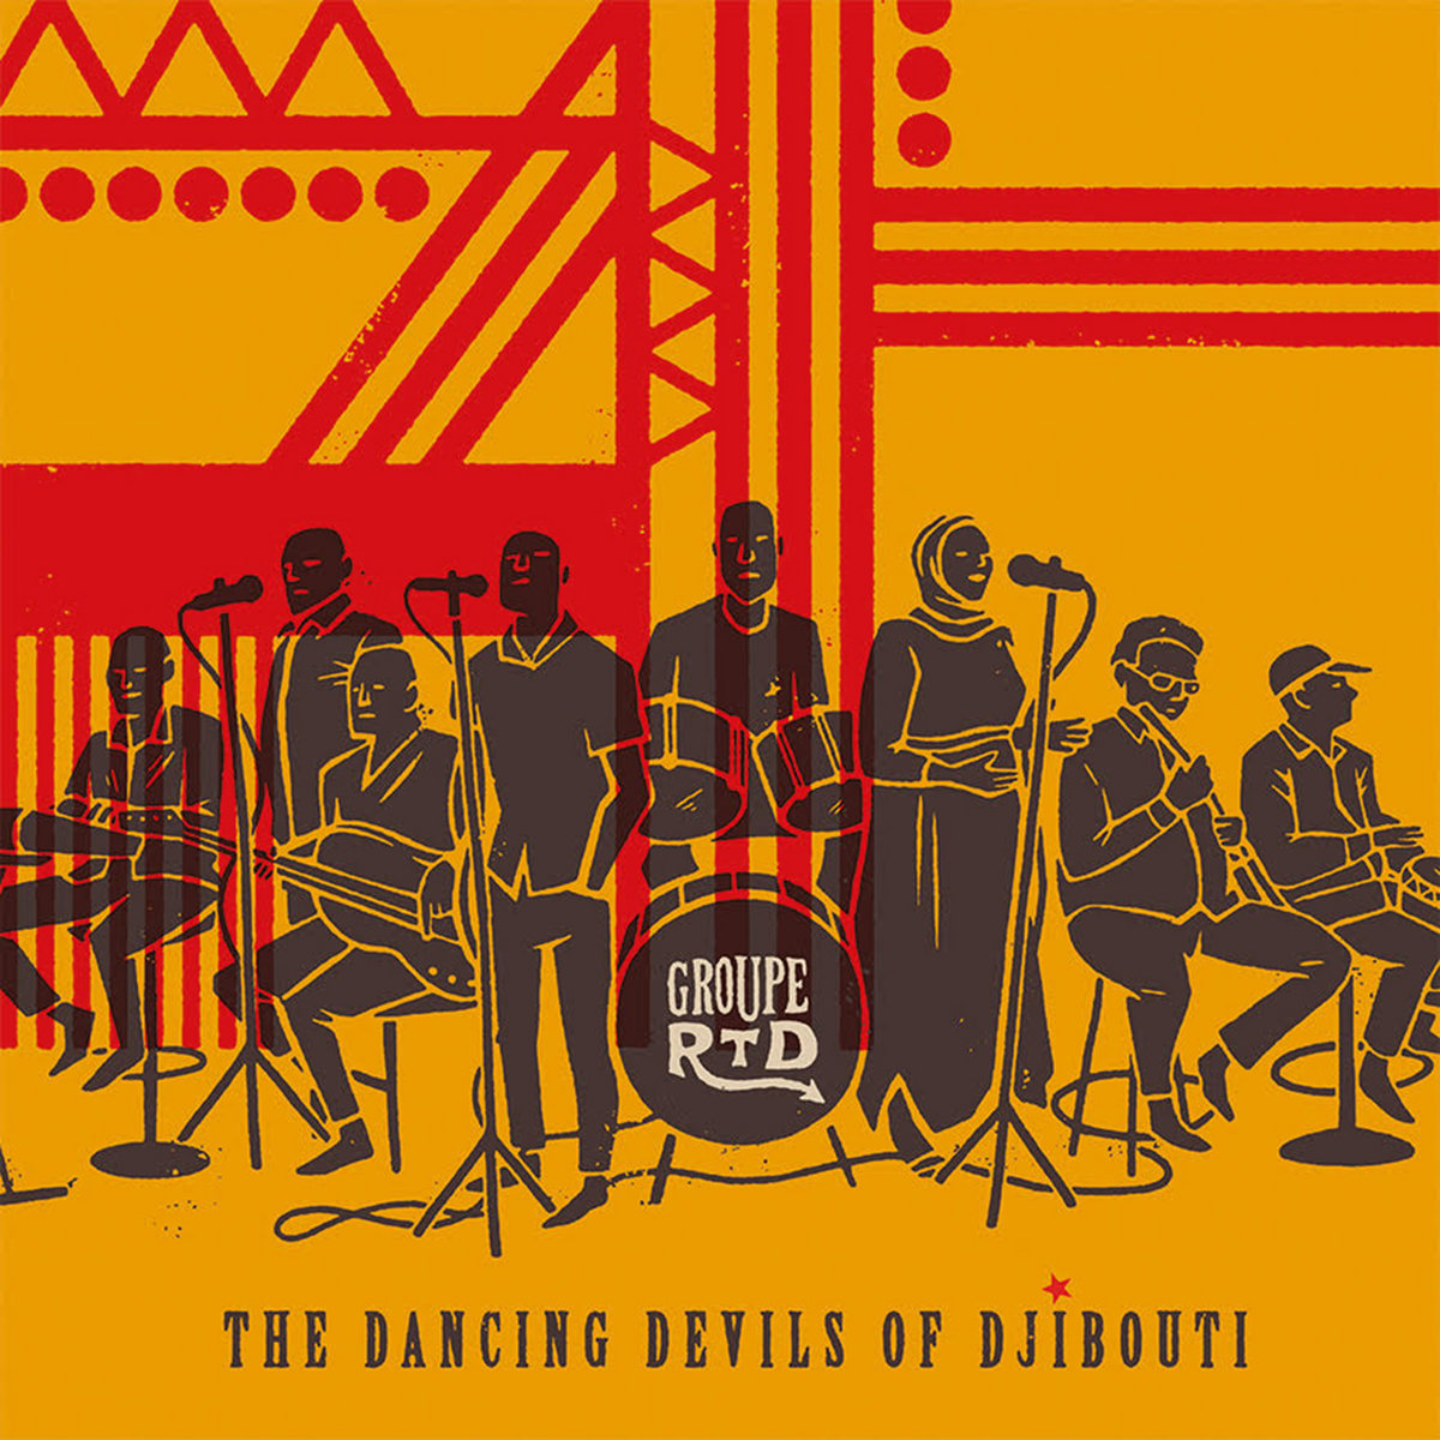 GROUPE RTD - The Dancing Devils of Djibouti 2xLP